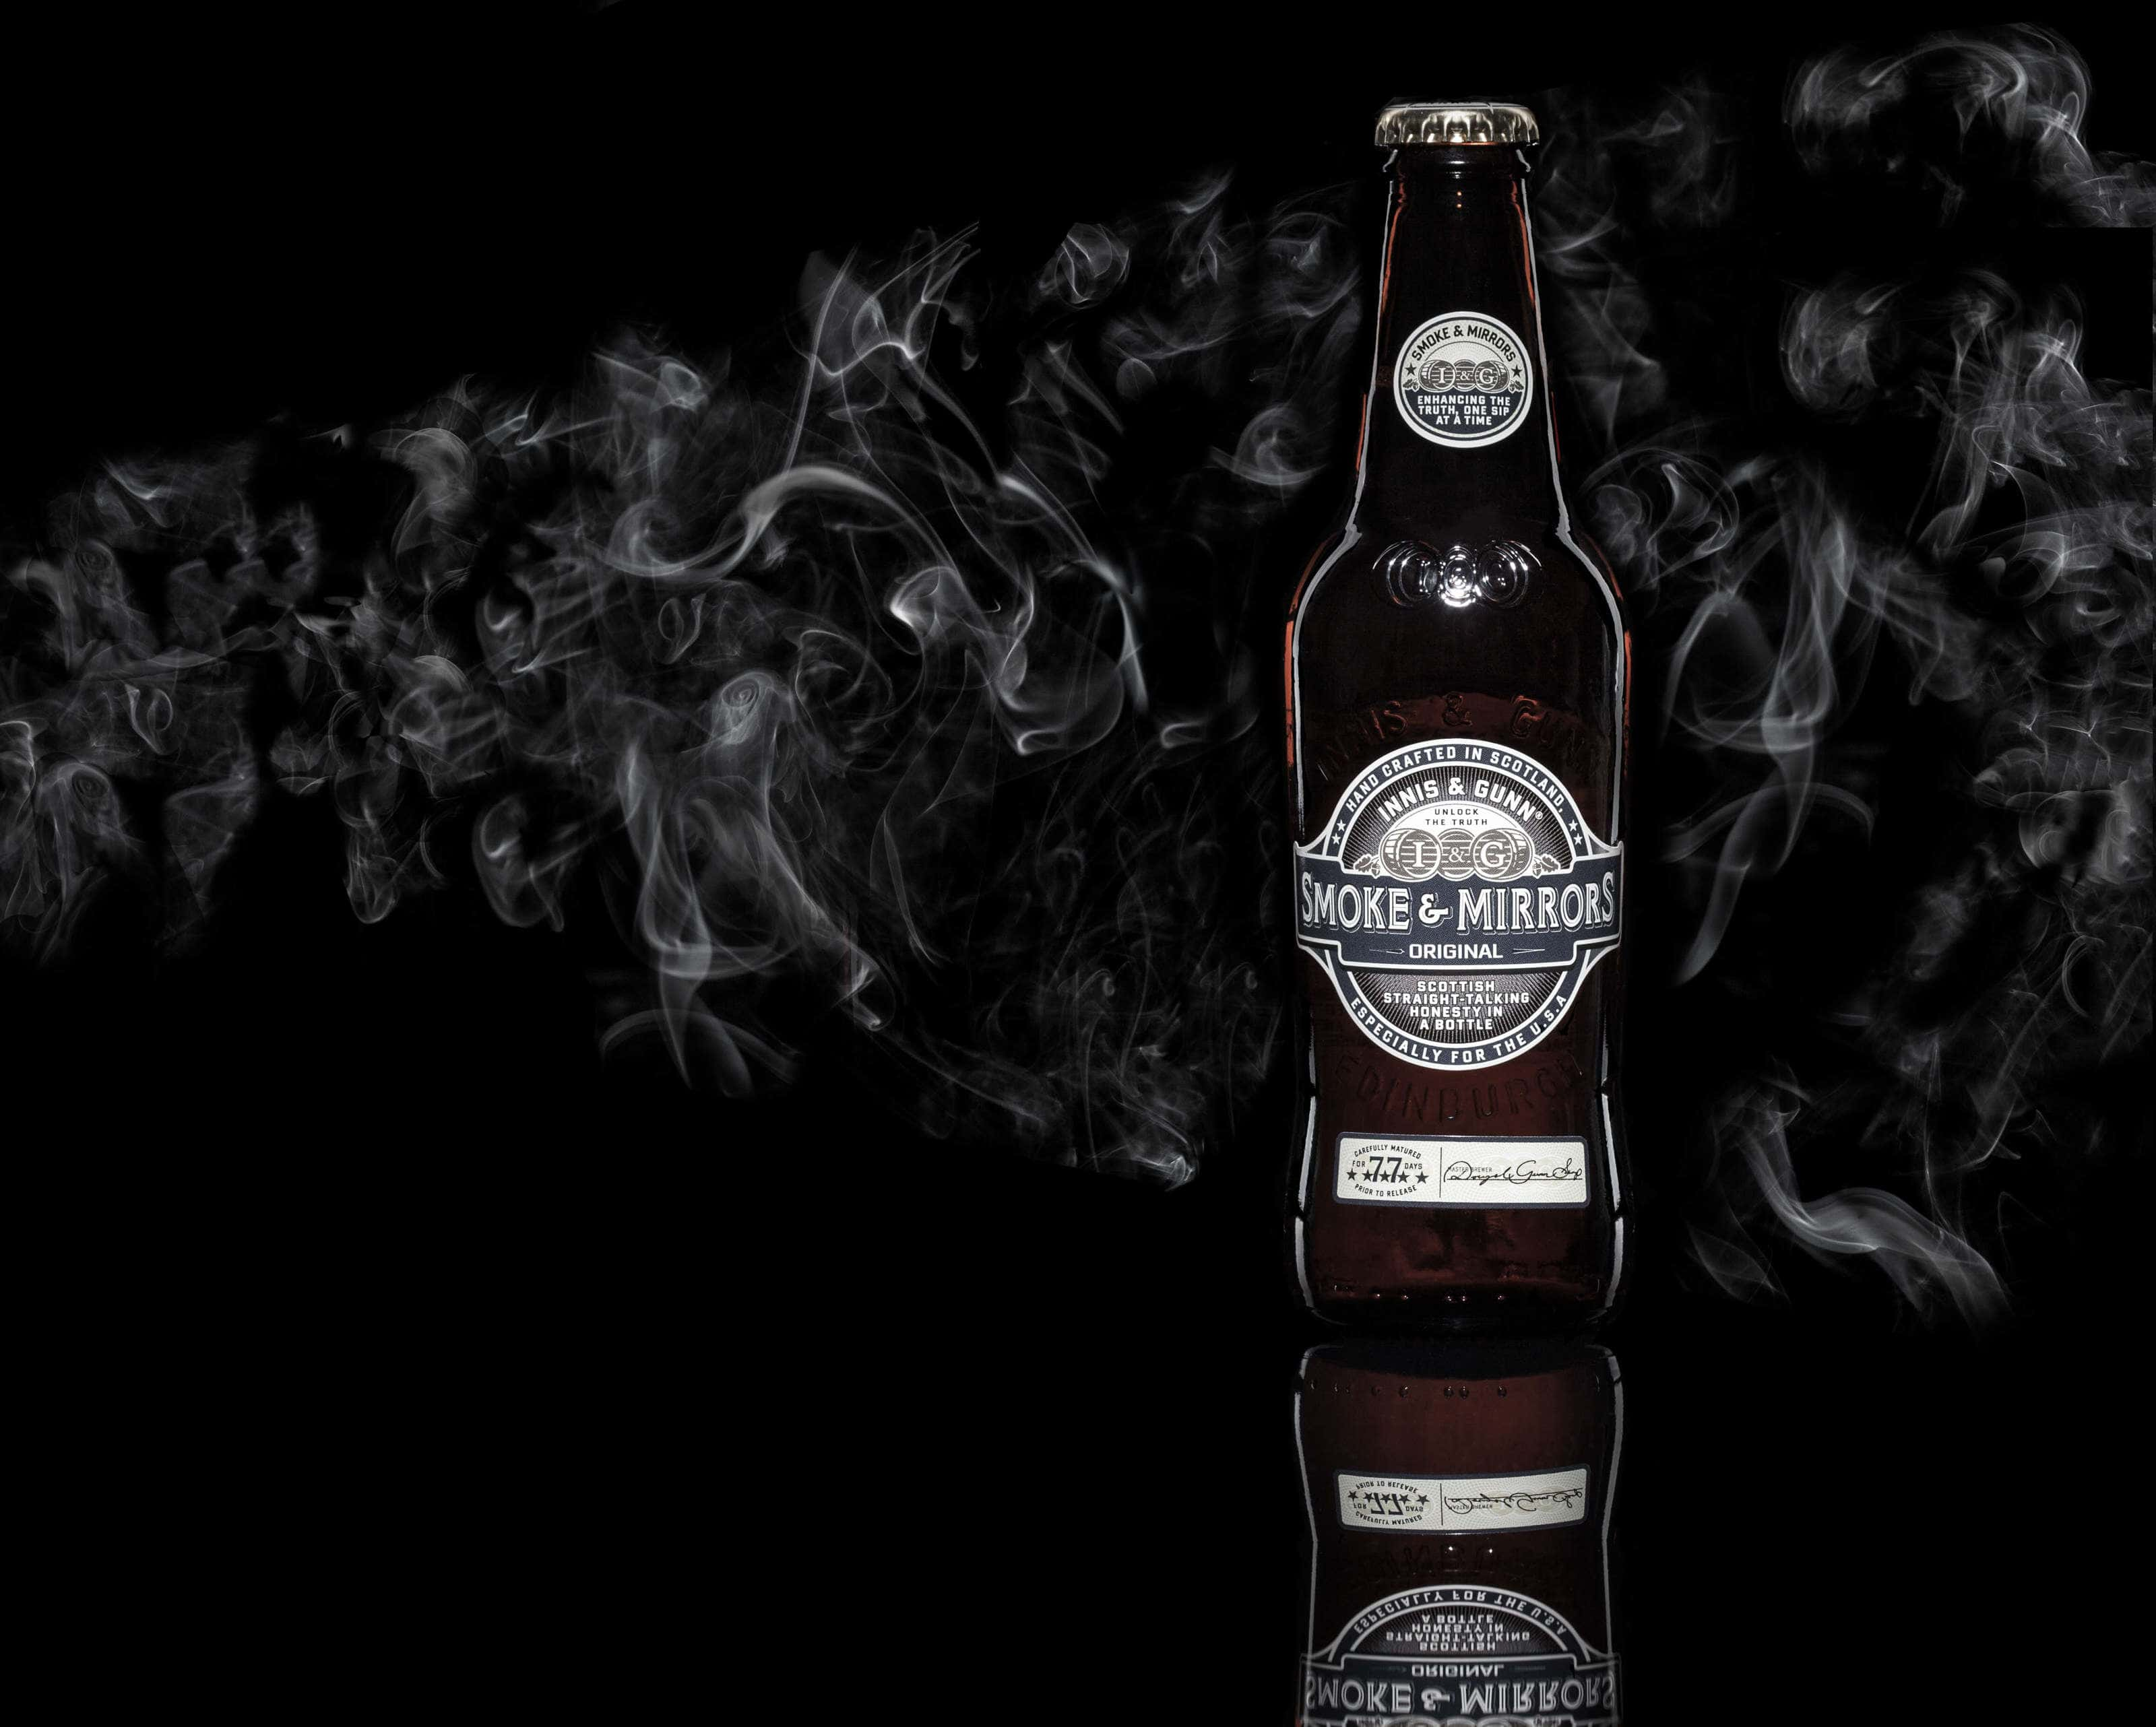 Innis Gunn bottle of beer on a black background with smoke behind.